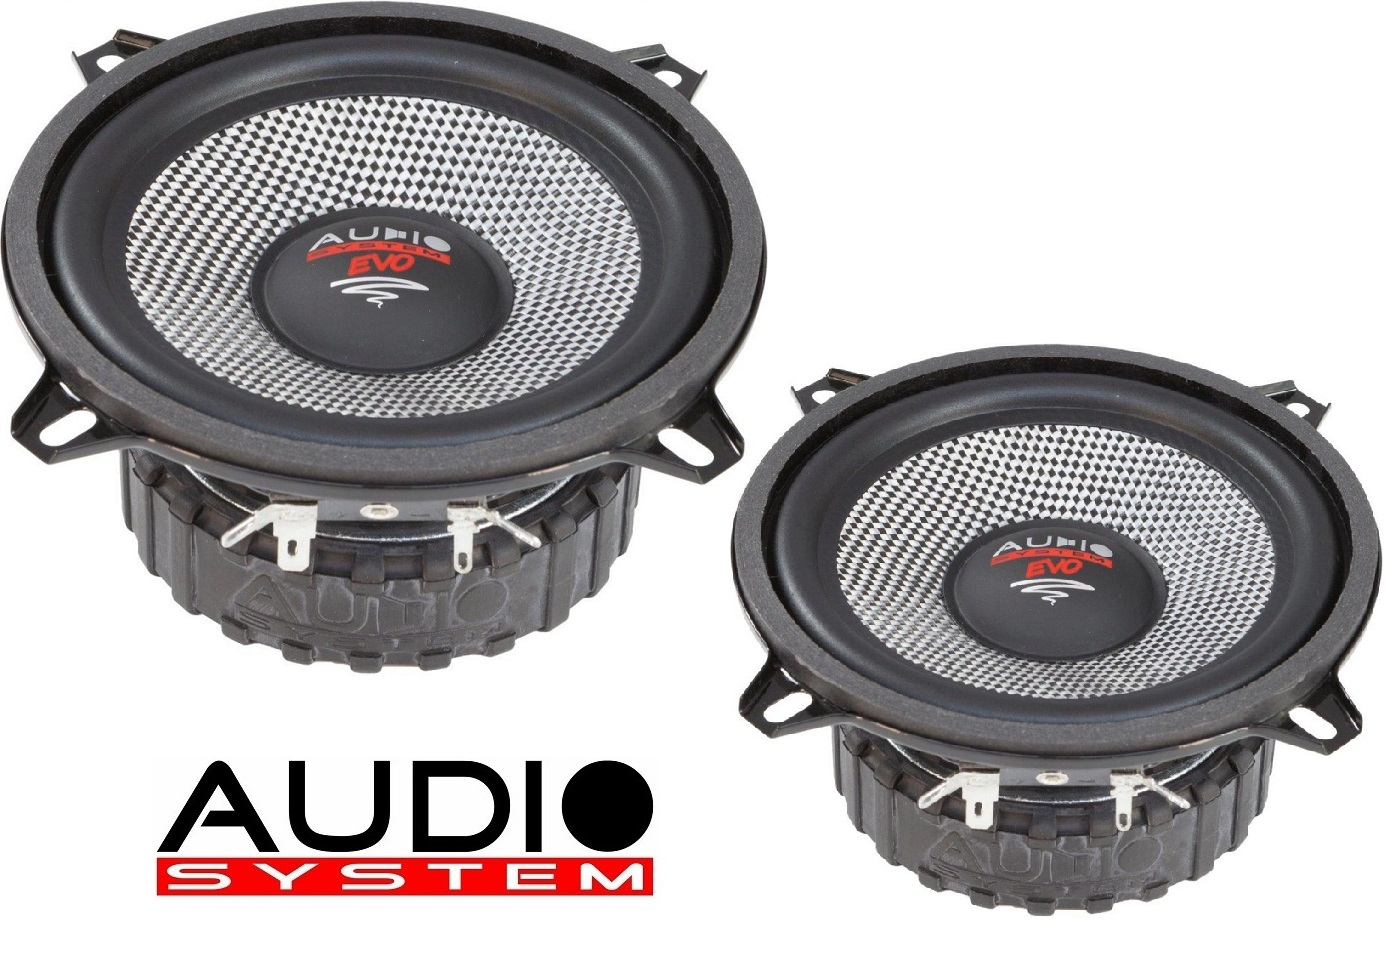 AUDIO SYSTEM AS 130 EM EVO Kick / Mitteltöner 125 Watt 1 Paar